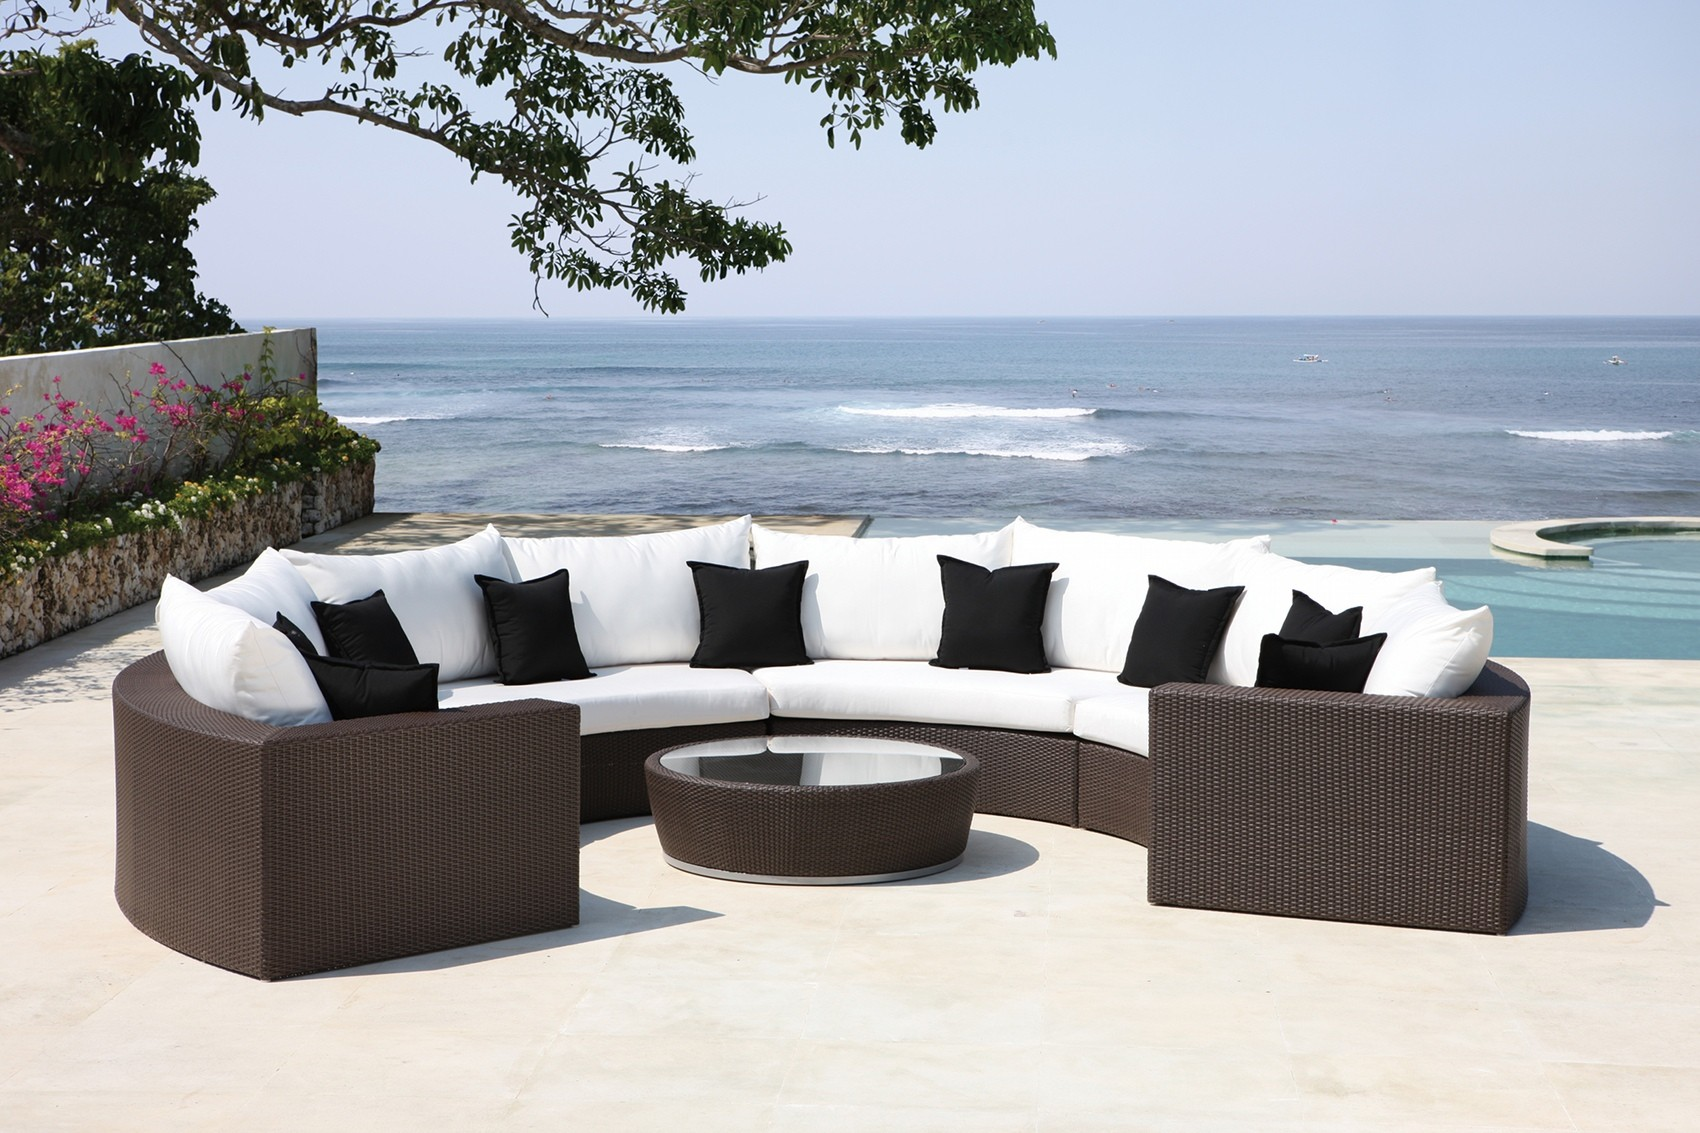 luxury garden furniture malai half moon lounger JAEXYNA